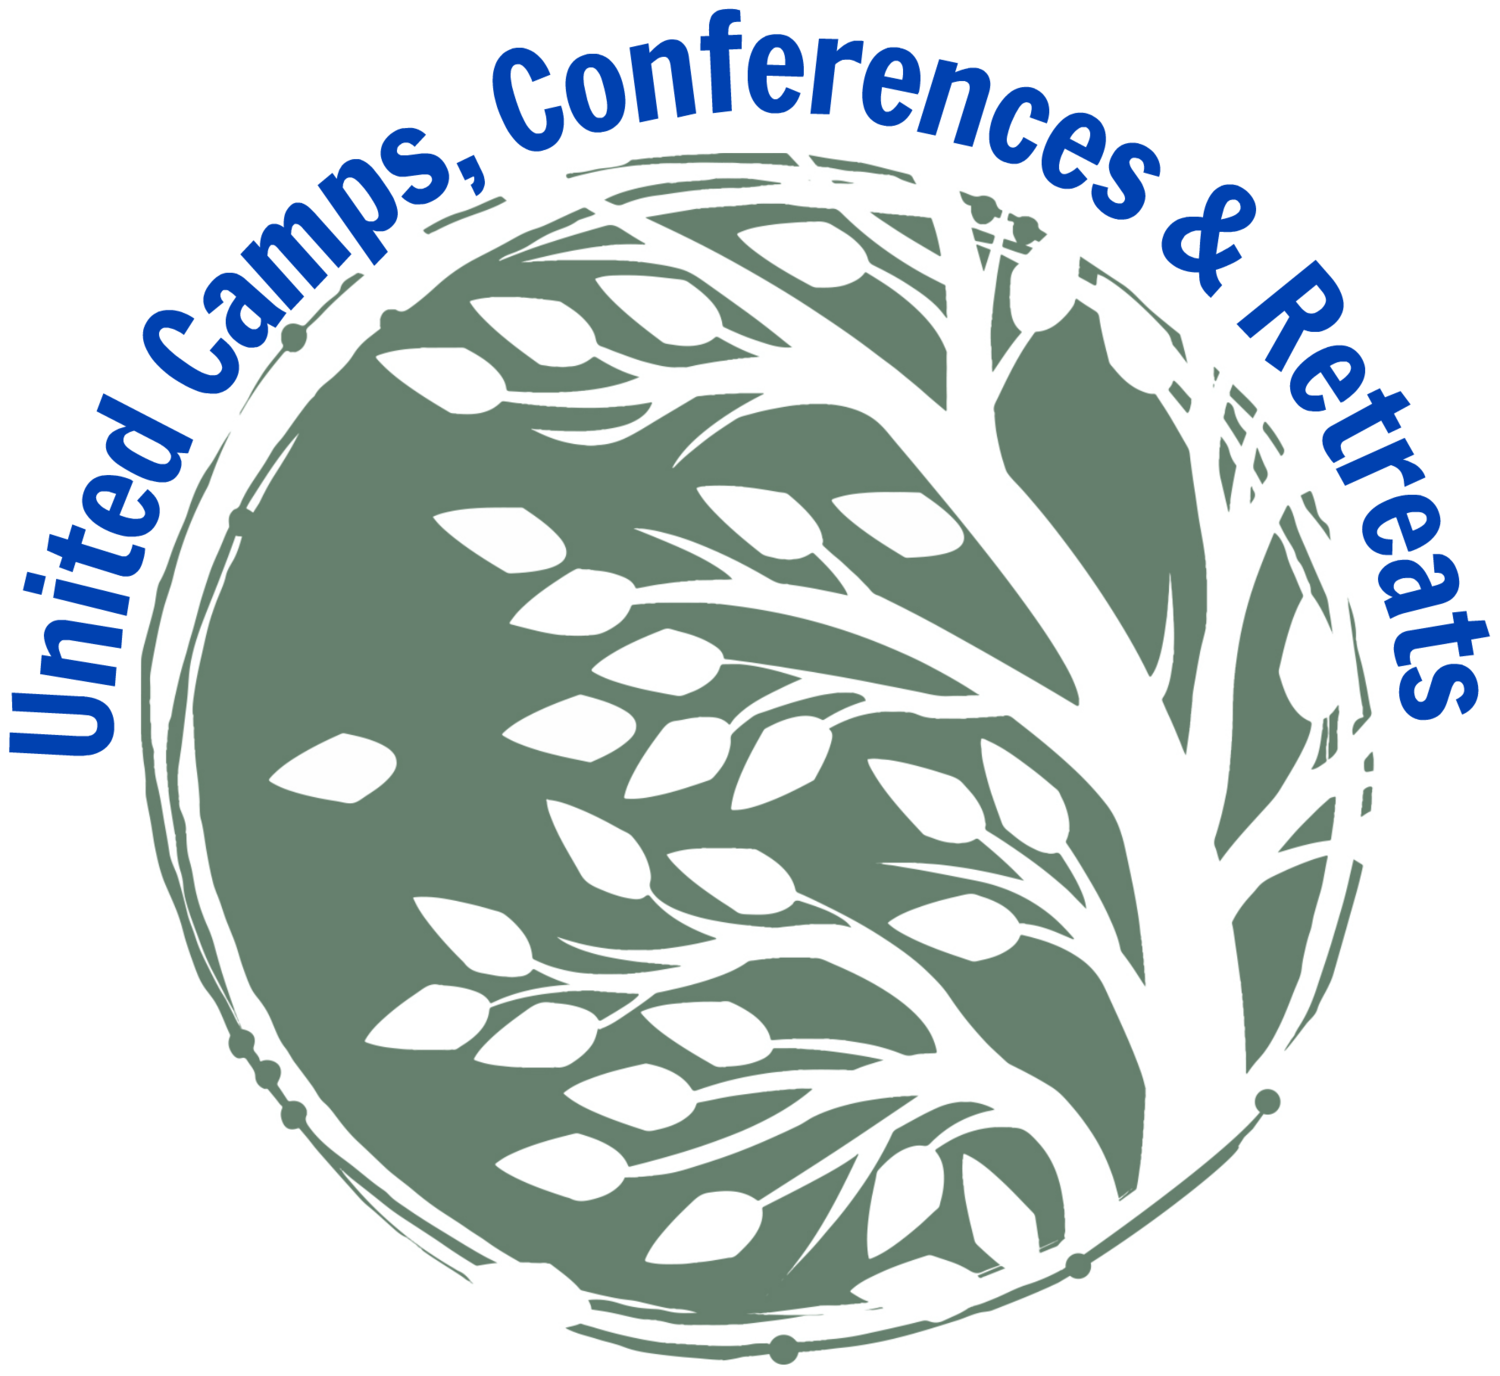 UCCR United Camps, Conferences & Retreats